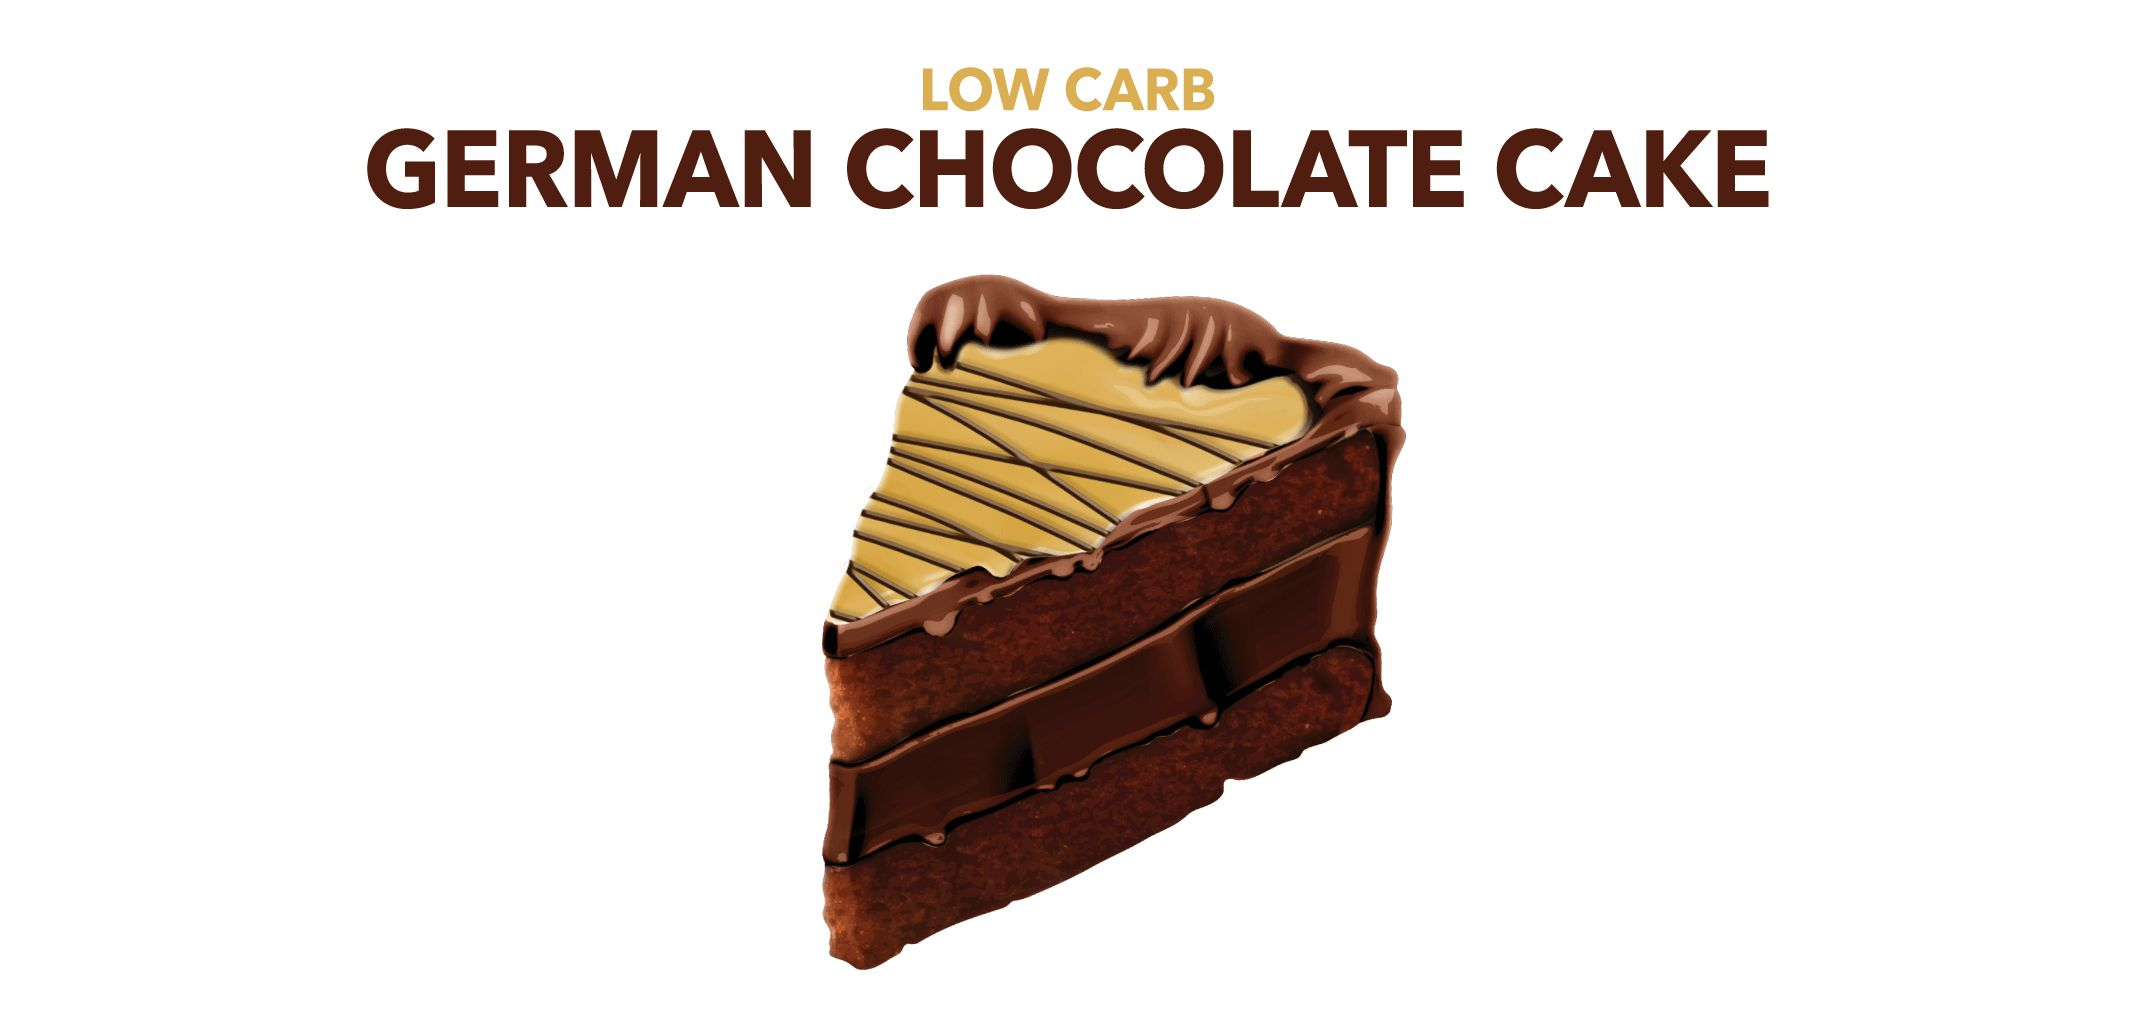 low carb german chocolate cake label image